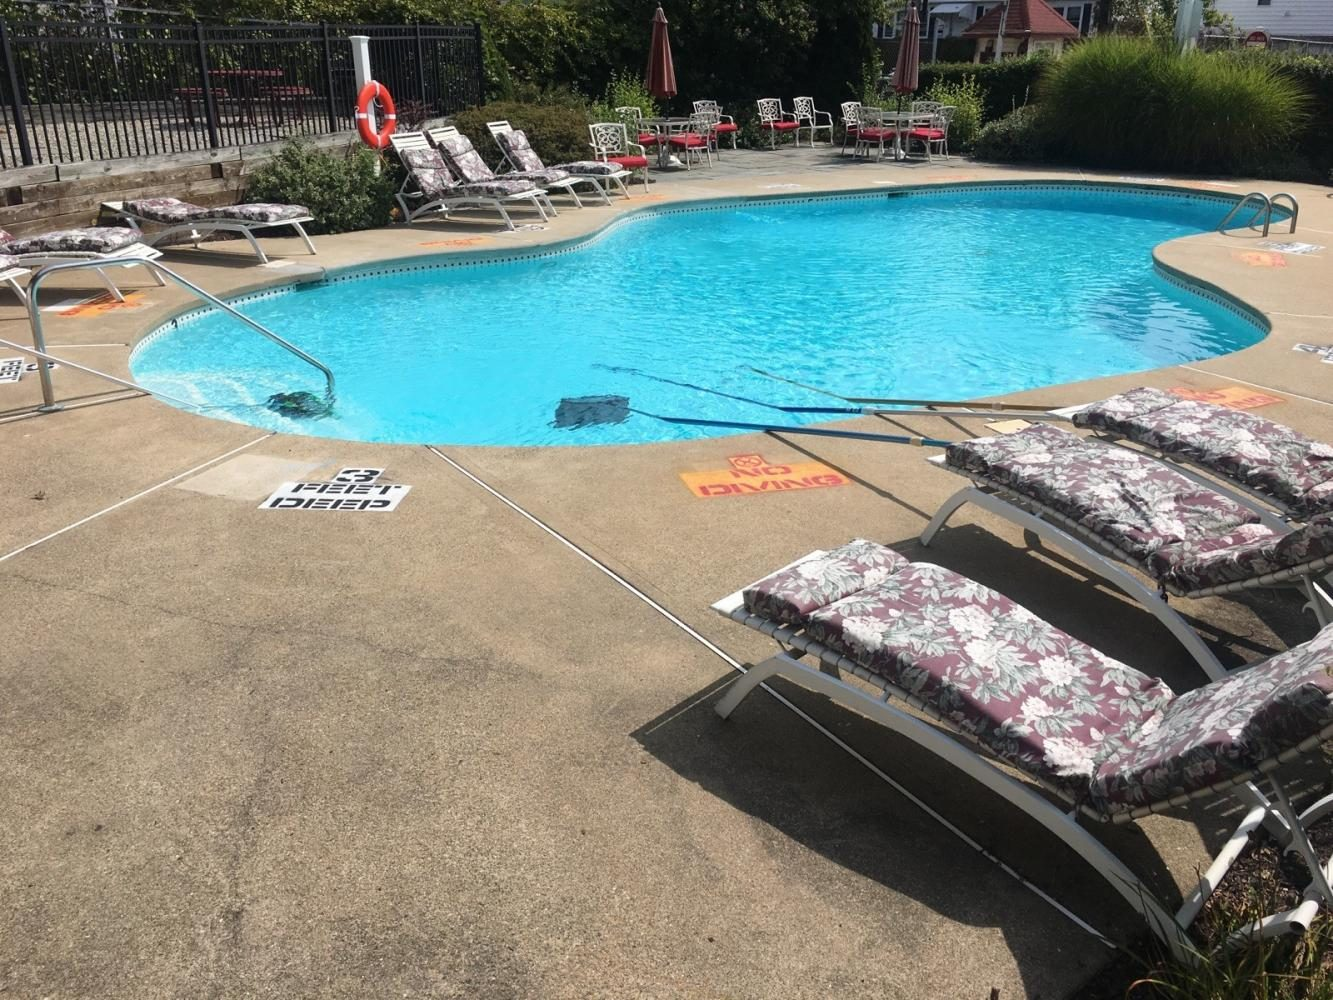 Forest Hills Pool Opens to Residents